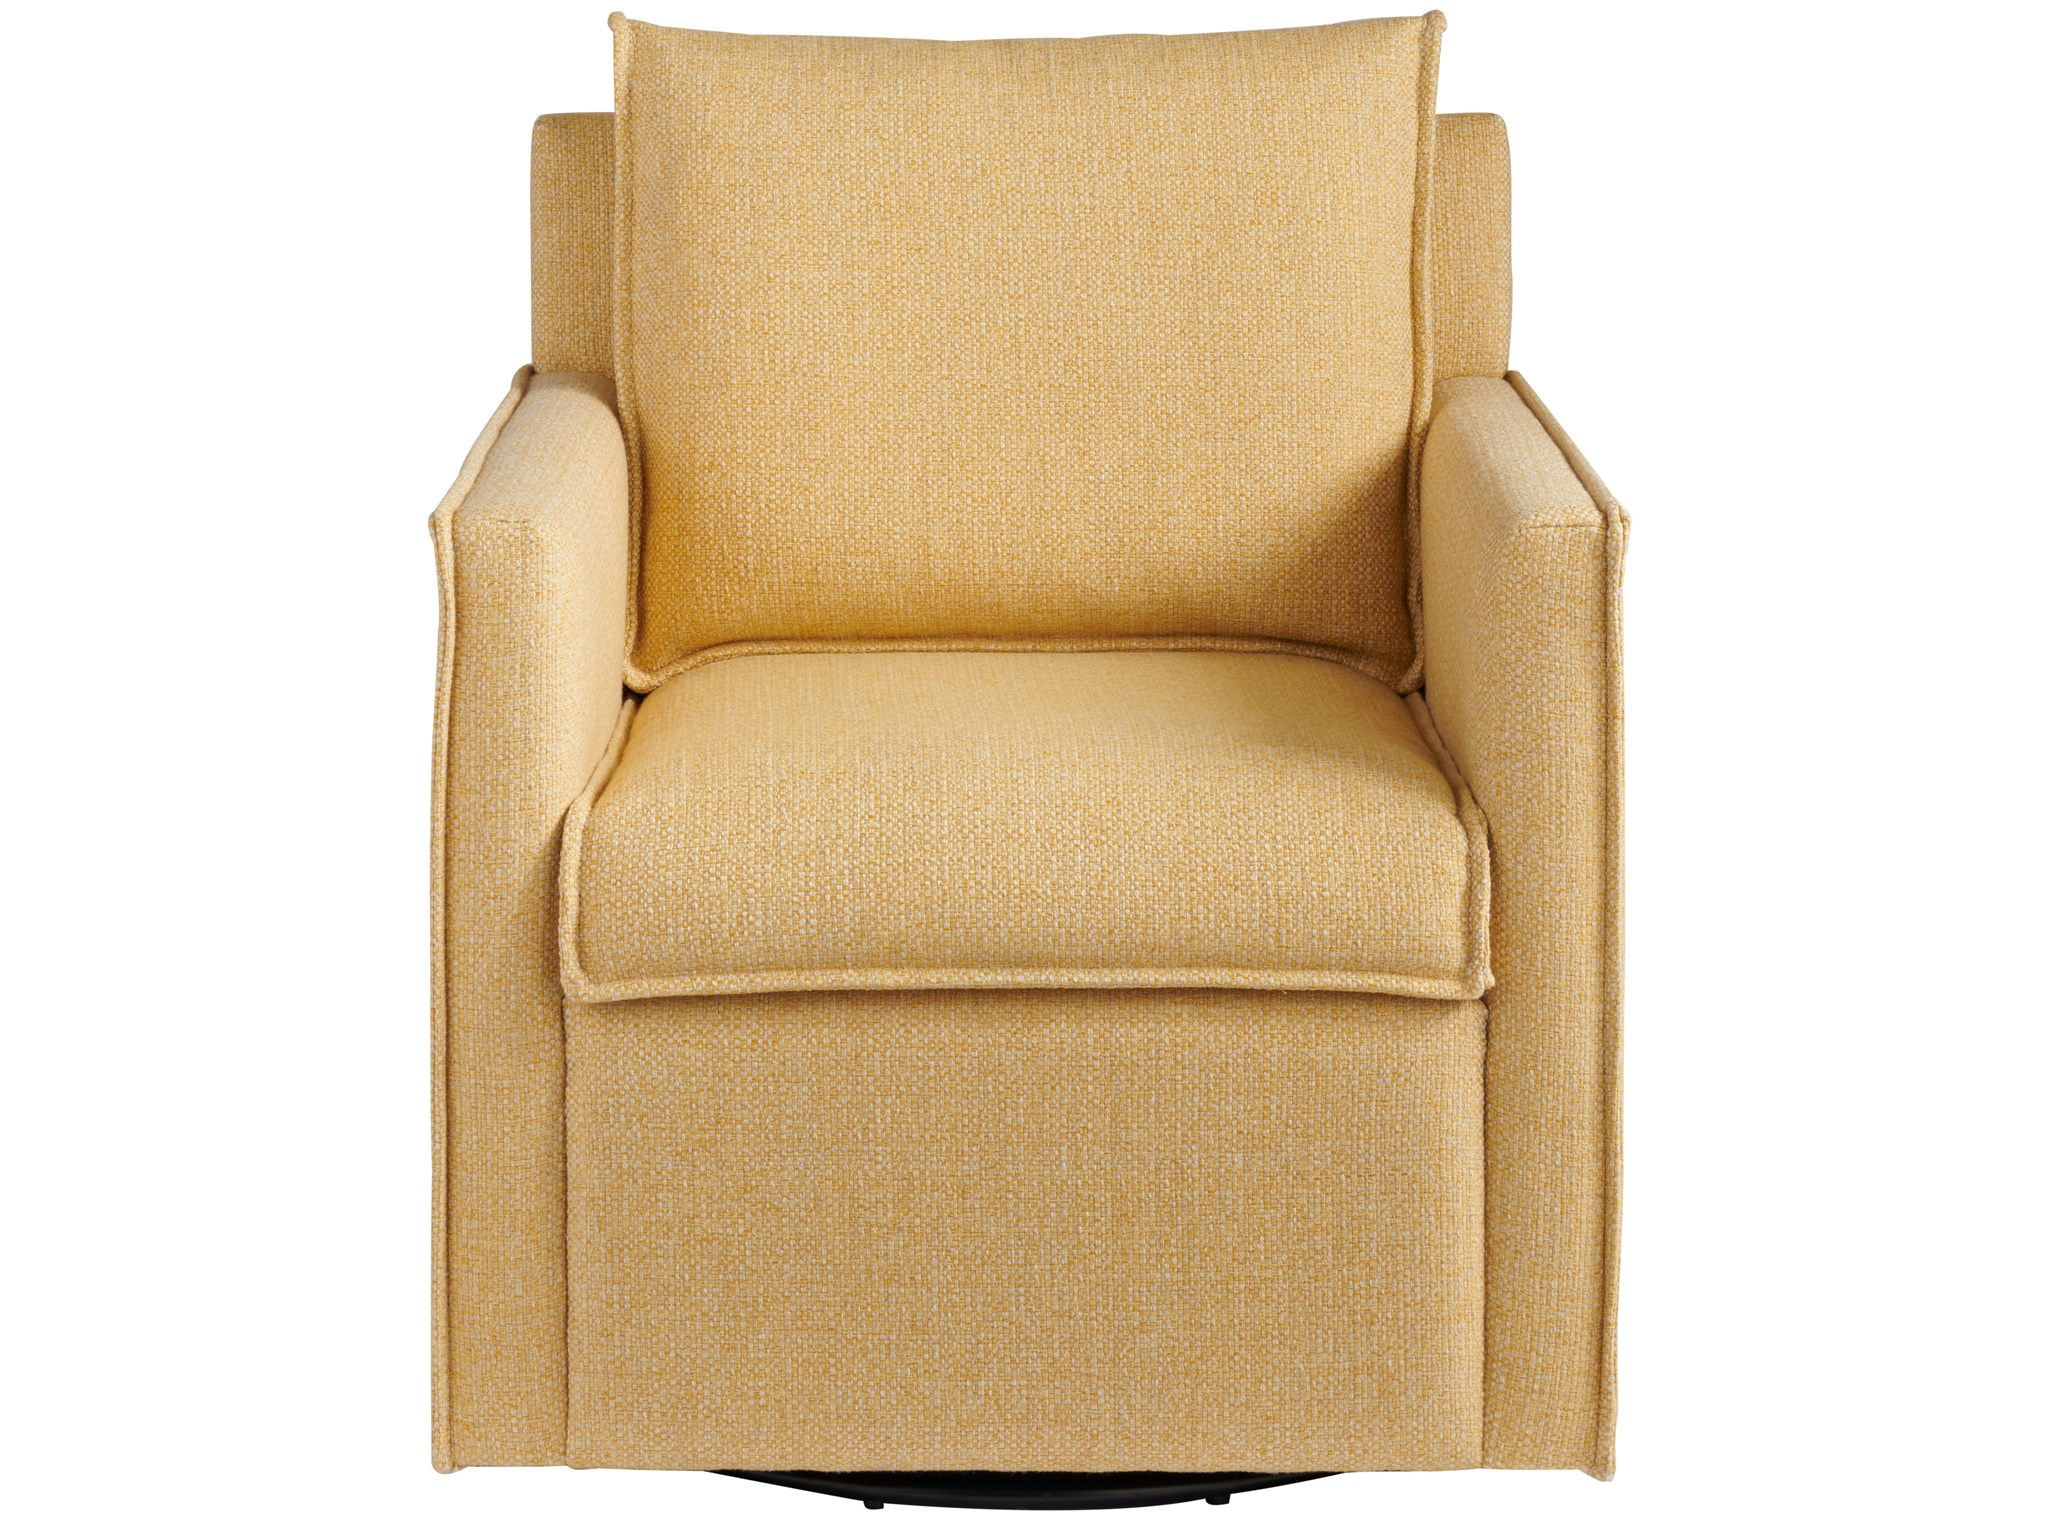 Barley Swivel Chair